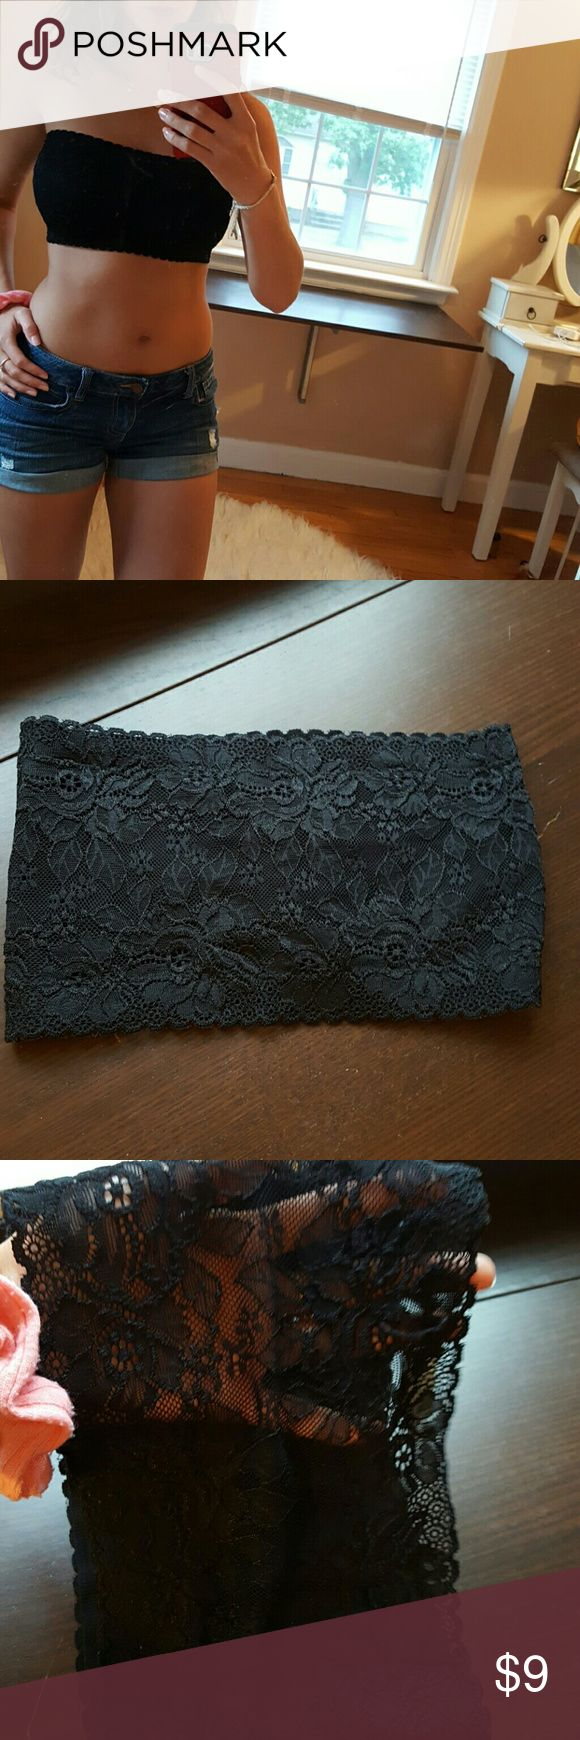 Bandeau top Black lace size S. Zenna outfitters. Back is lace see thru, front has black layer under black lace. Never worn. Forever 21 Intimates & Sleepwear Bandeaus